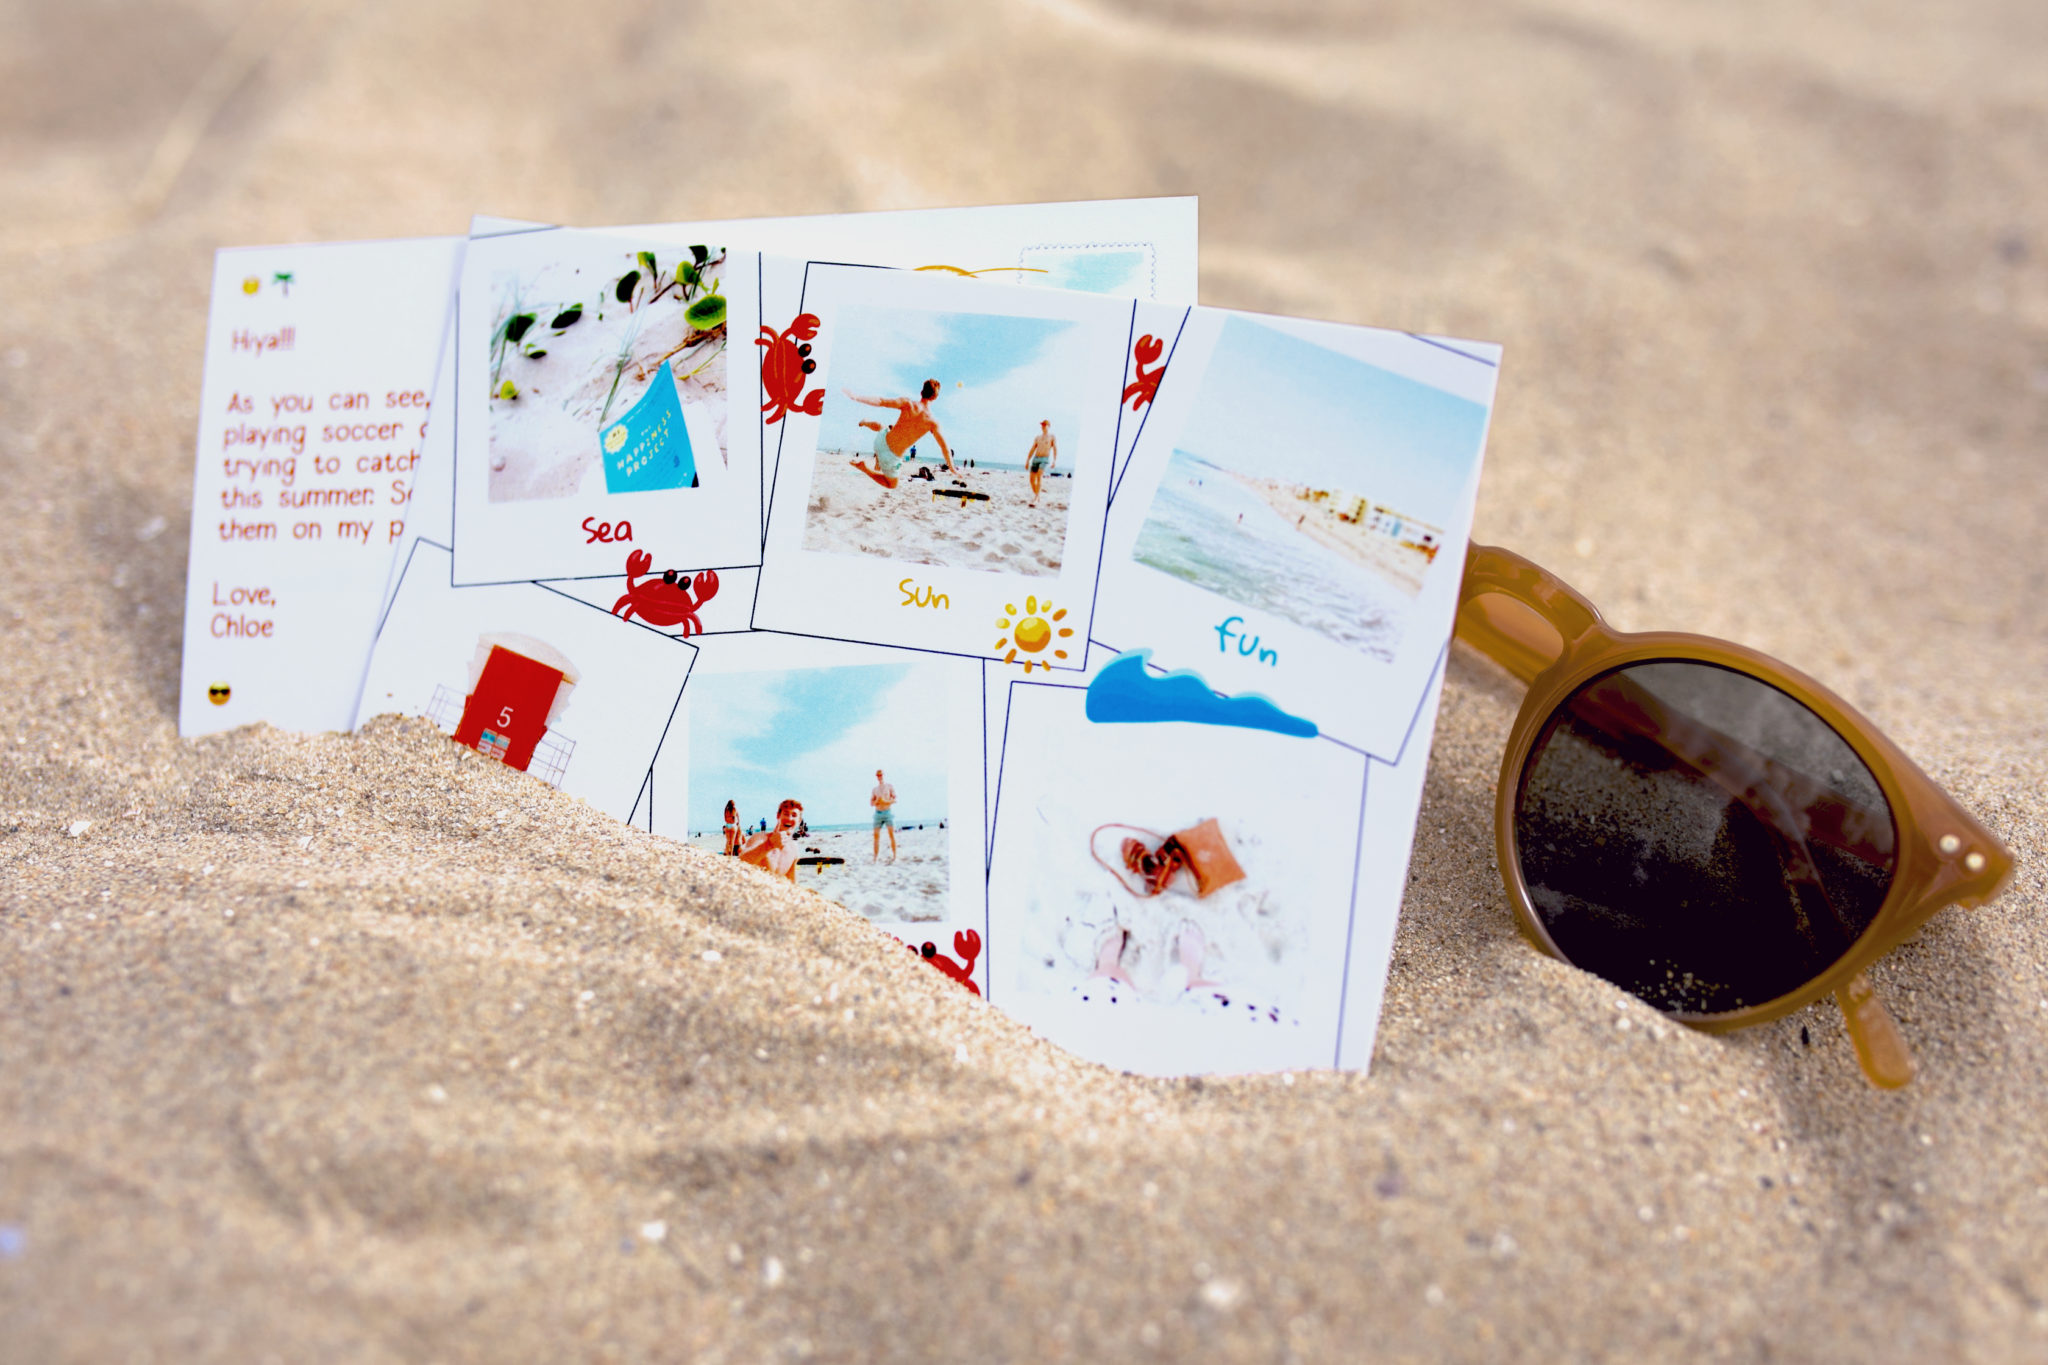 Your postcard is sent in an envelope to protect your photos